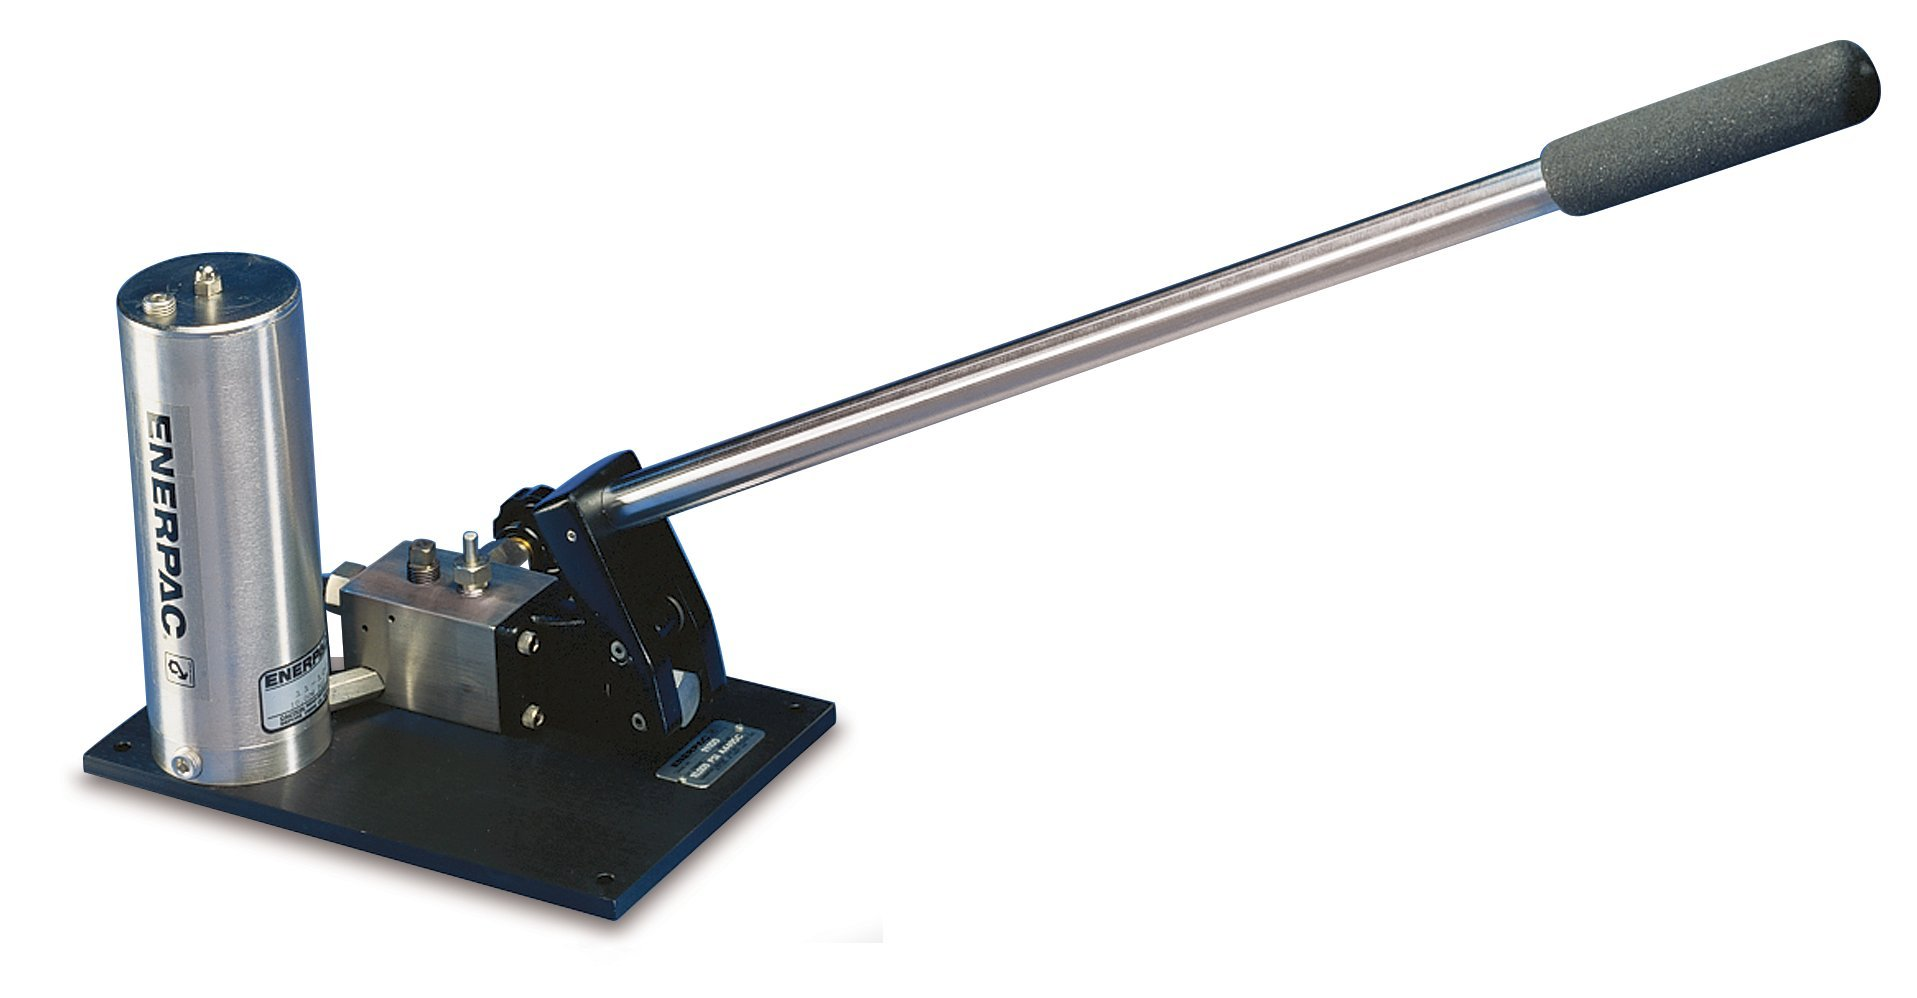 Enerpac 11-400 Ultra High Pressure Hand Pump with 0 to 40,000 Pounds Per Square Inch